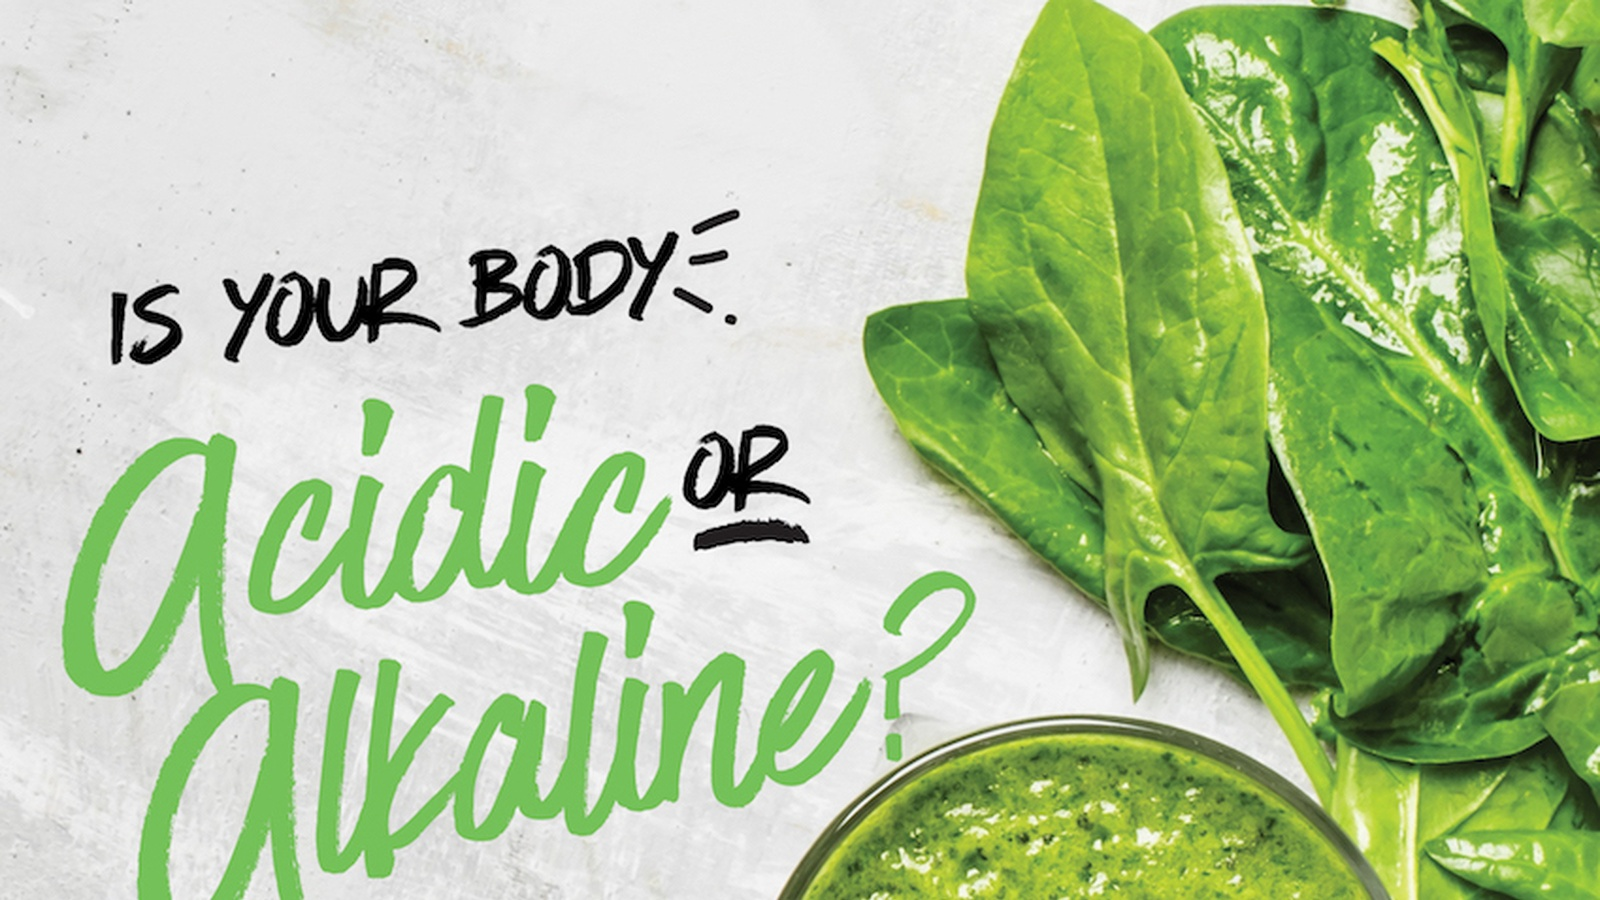 Is Your Body Acidic Or Alkaline? Take This Quiz!